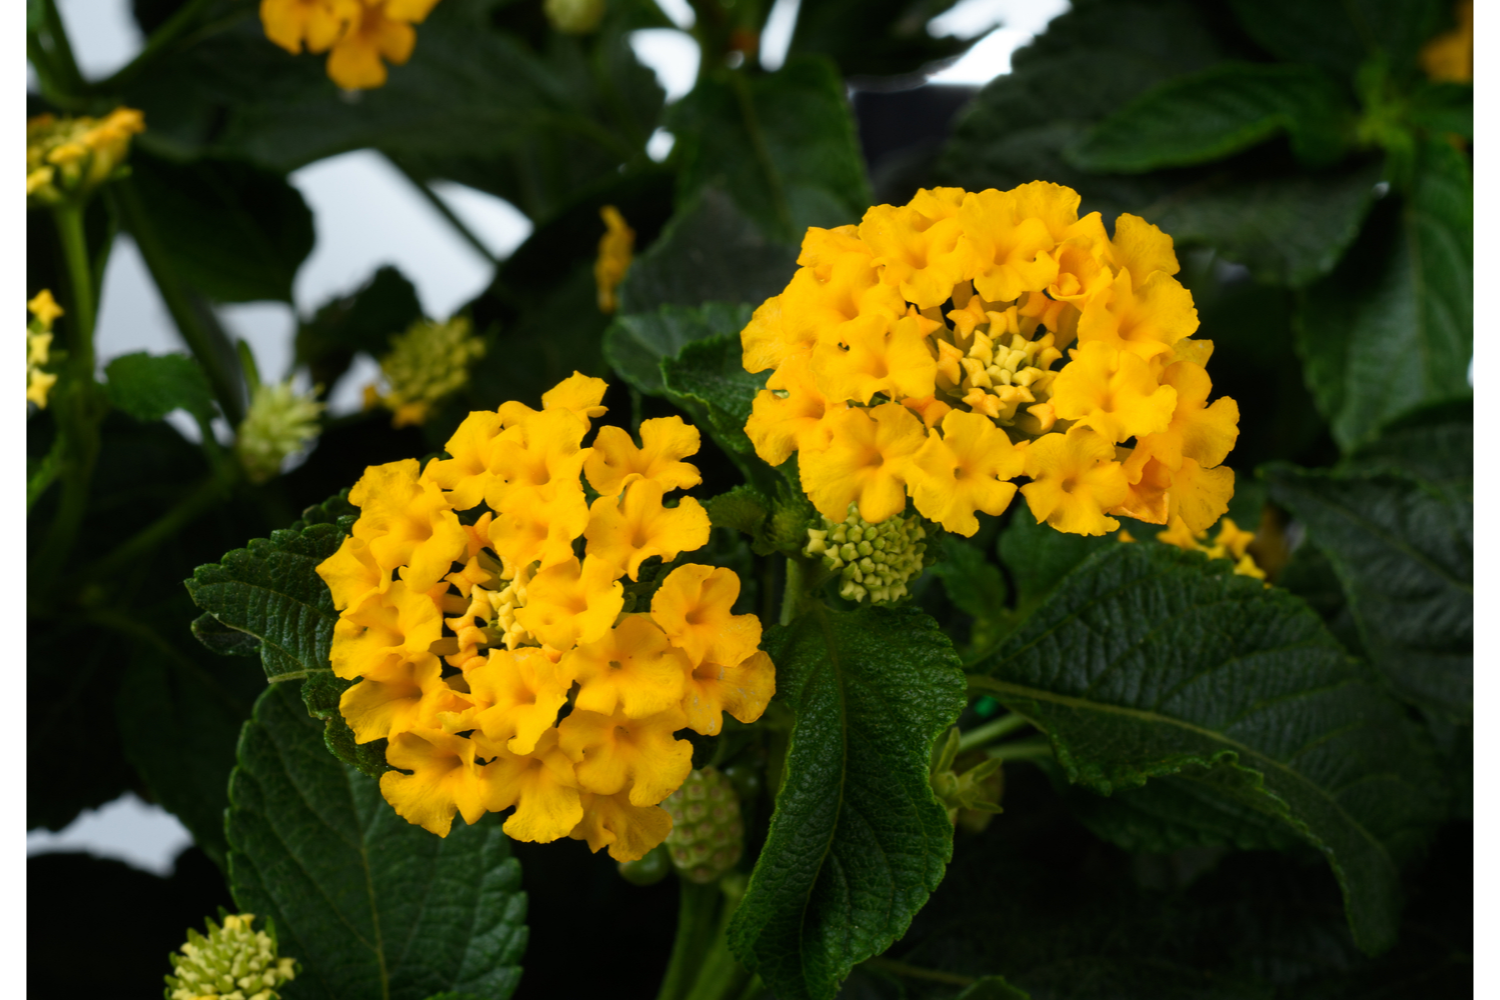 Lantana Pictures In 2020 Lantana Garden Small Space Gardening